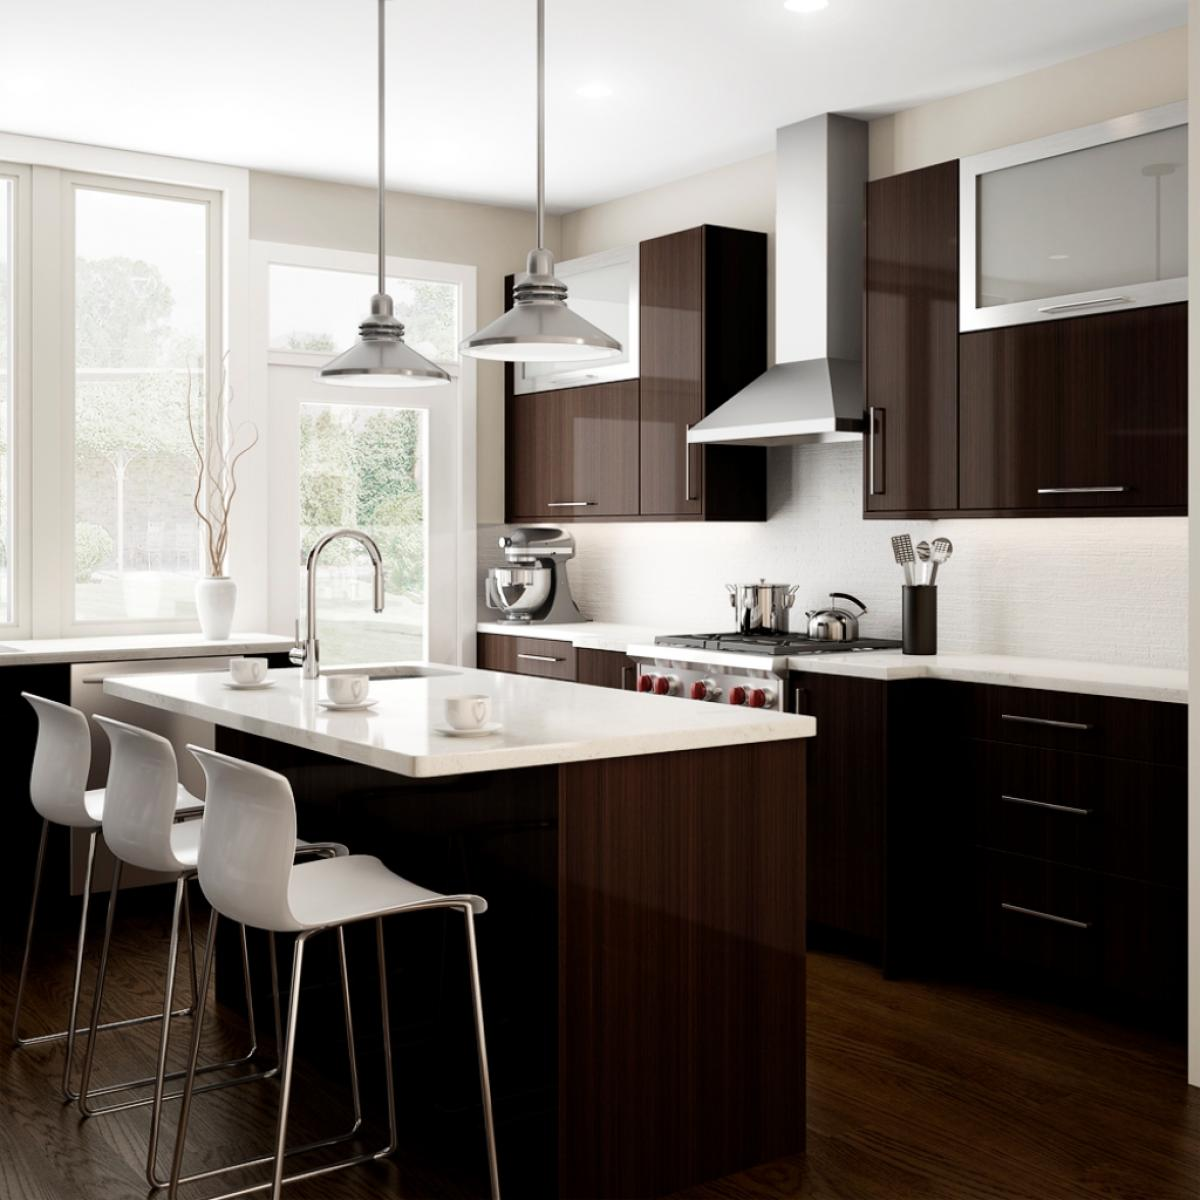 Modern-luxurious-small-kitchen-design-with-small-kitchen